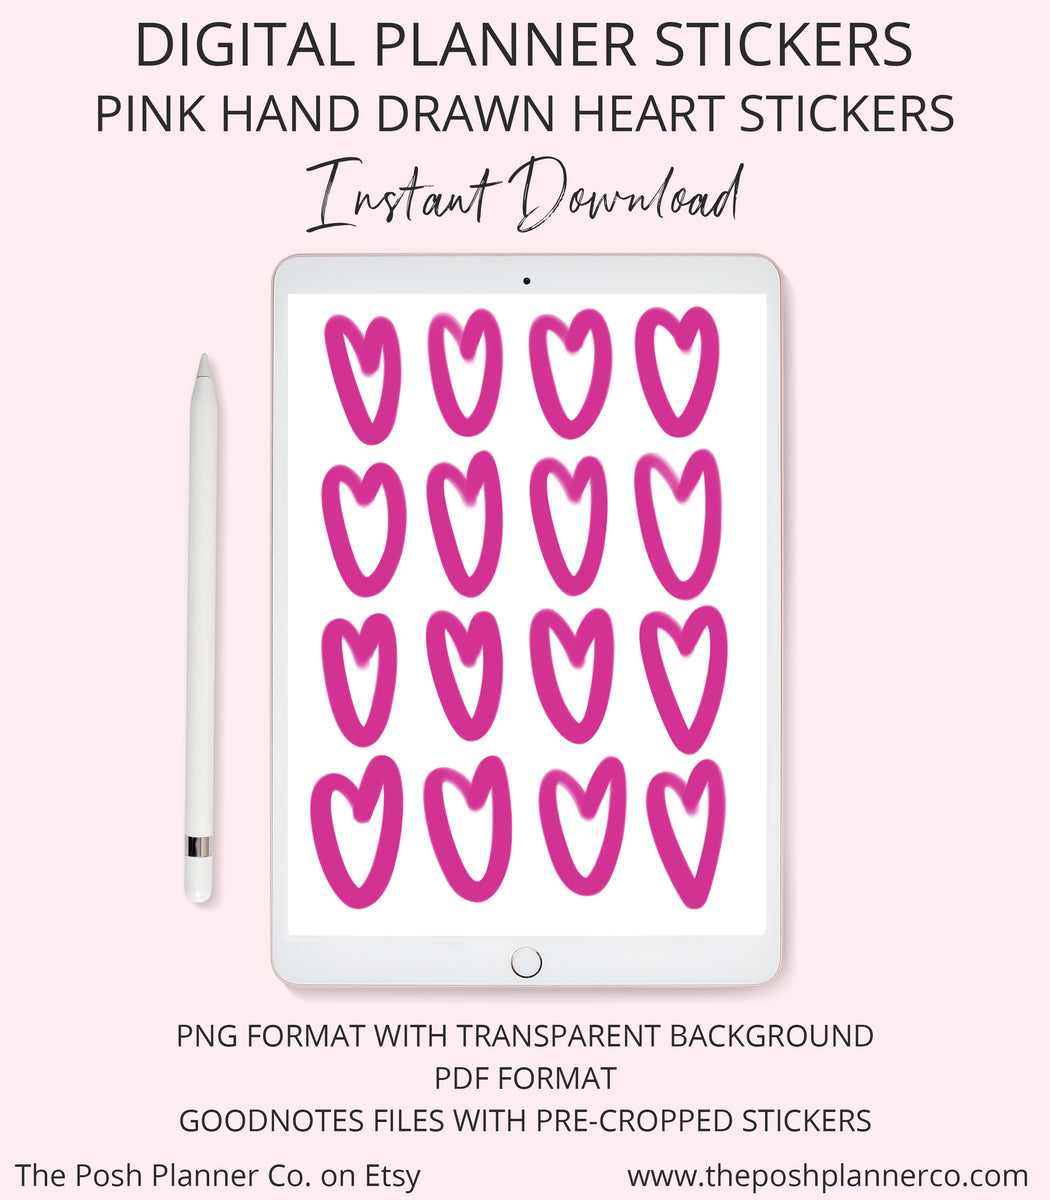 Digital Planner Stickers - Pink Hand Drawn Hearts - iPad Planner Stickers  for Goodnotes